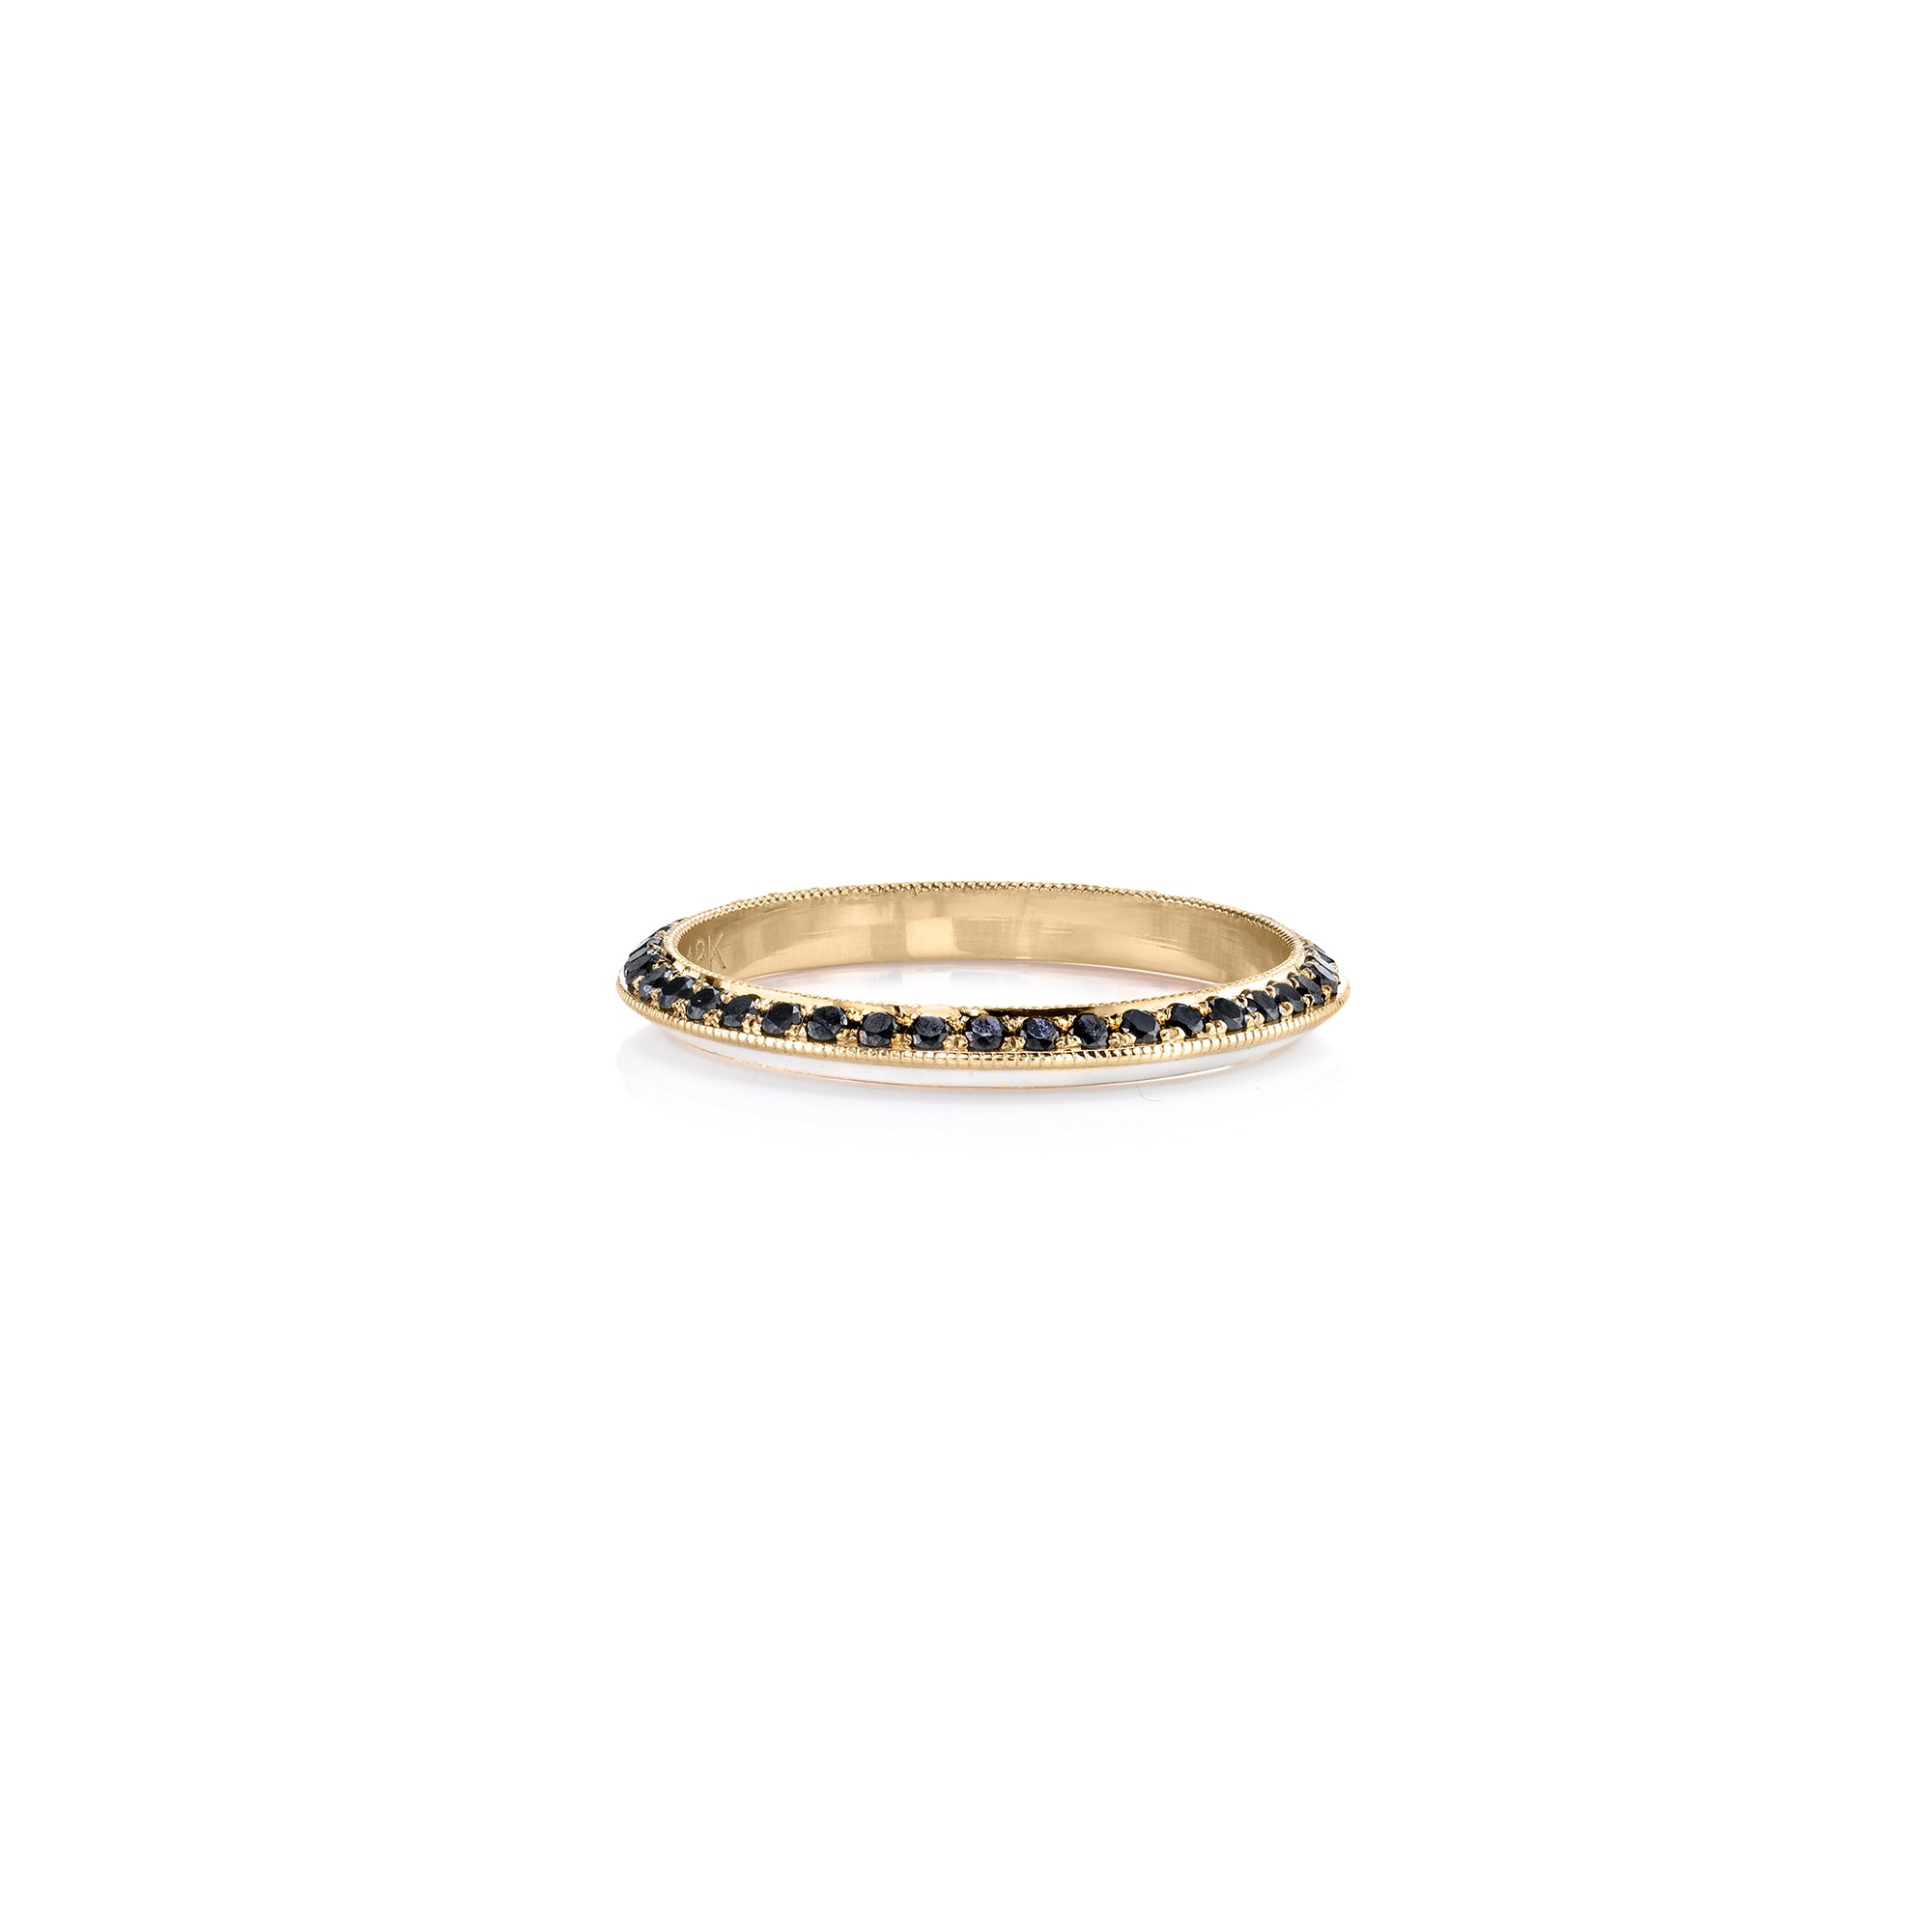 Black Diamond and White Enamel Stackable Ring